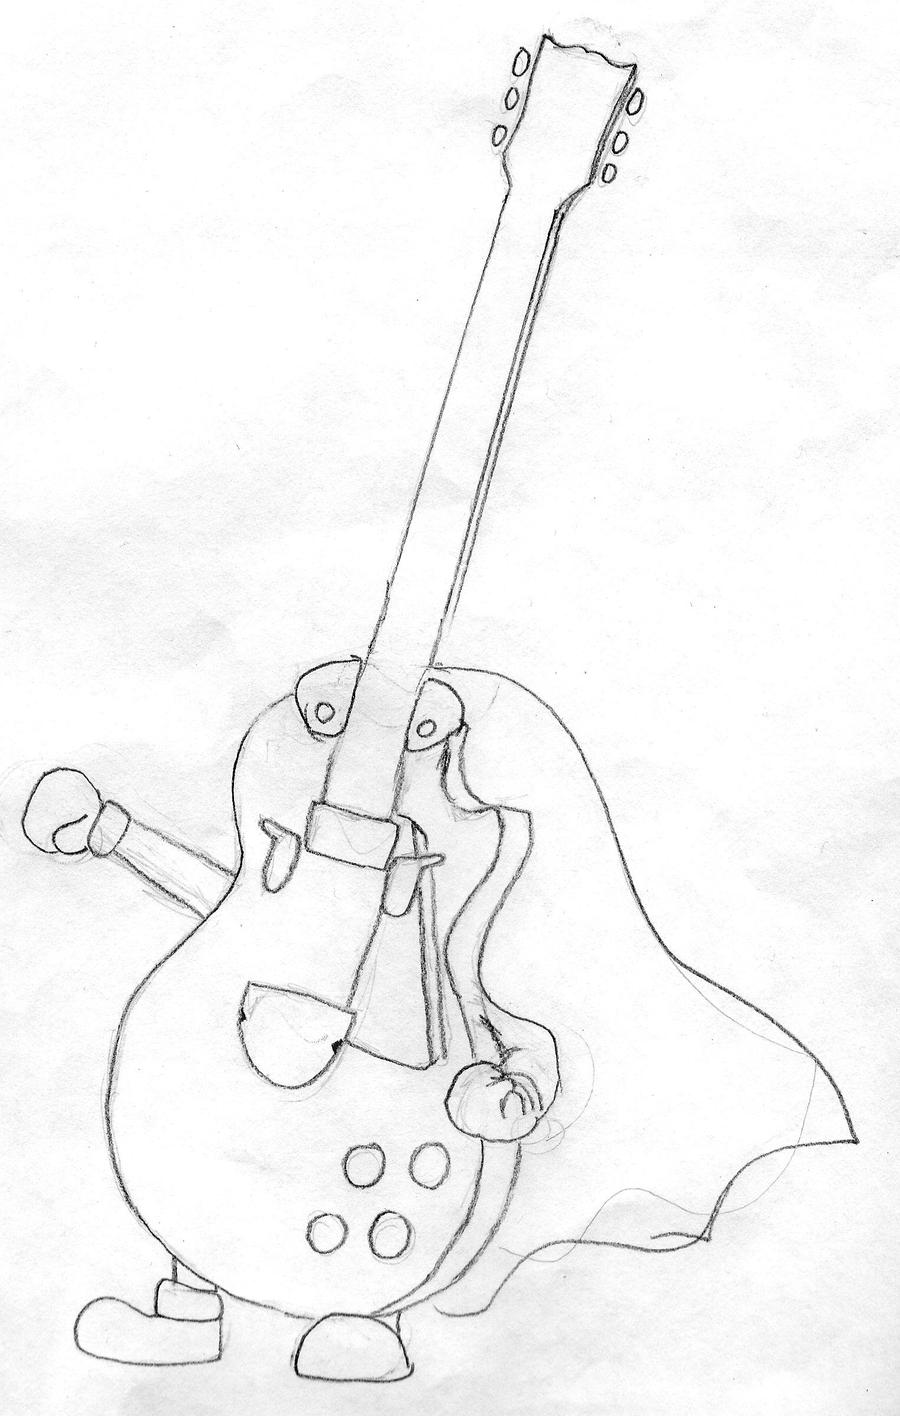 guitar hero coloring pages - photo#16